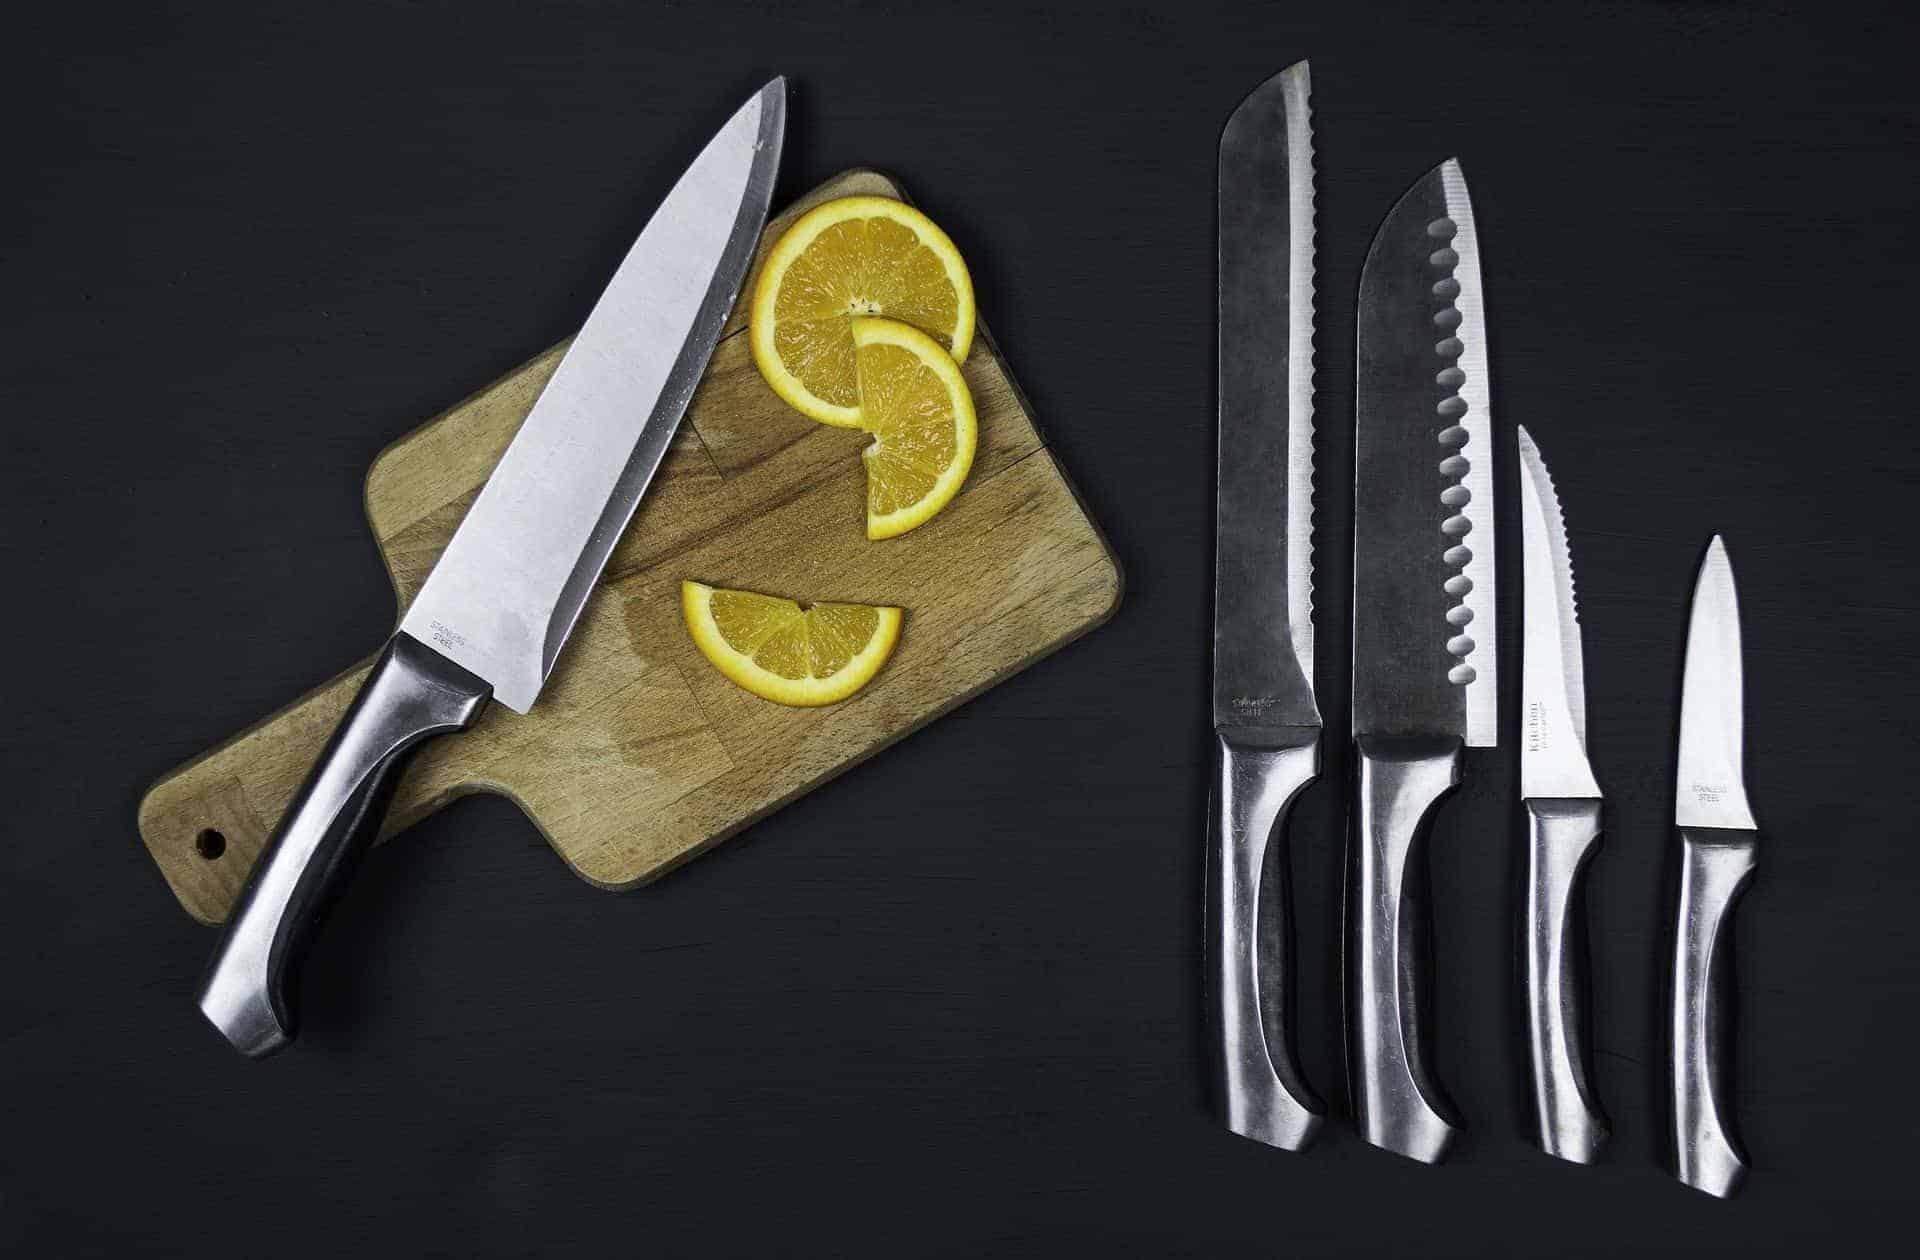 5 Must Have Knives For Every Great Home Cook - What To Look For?